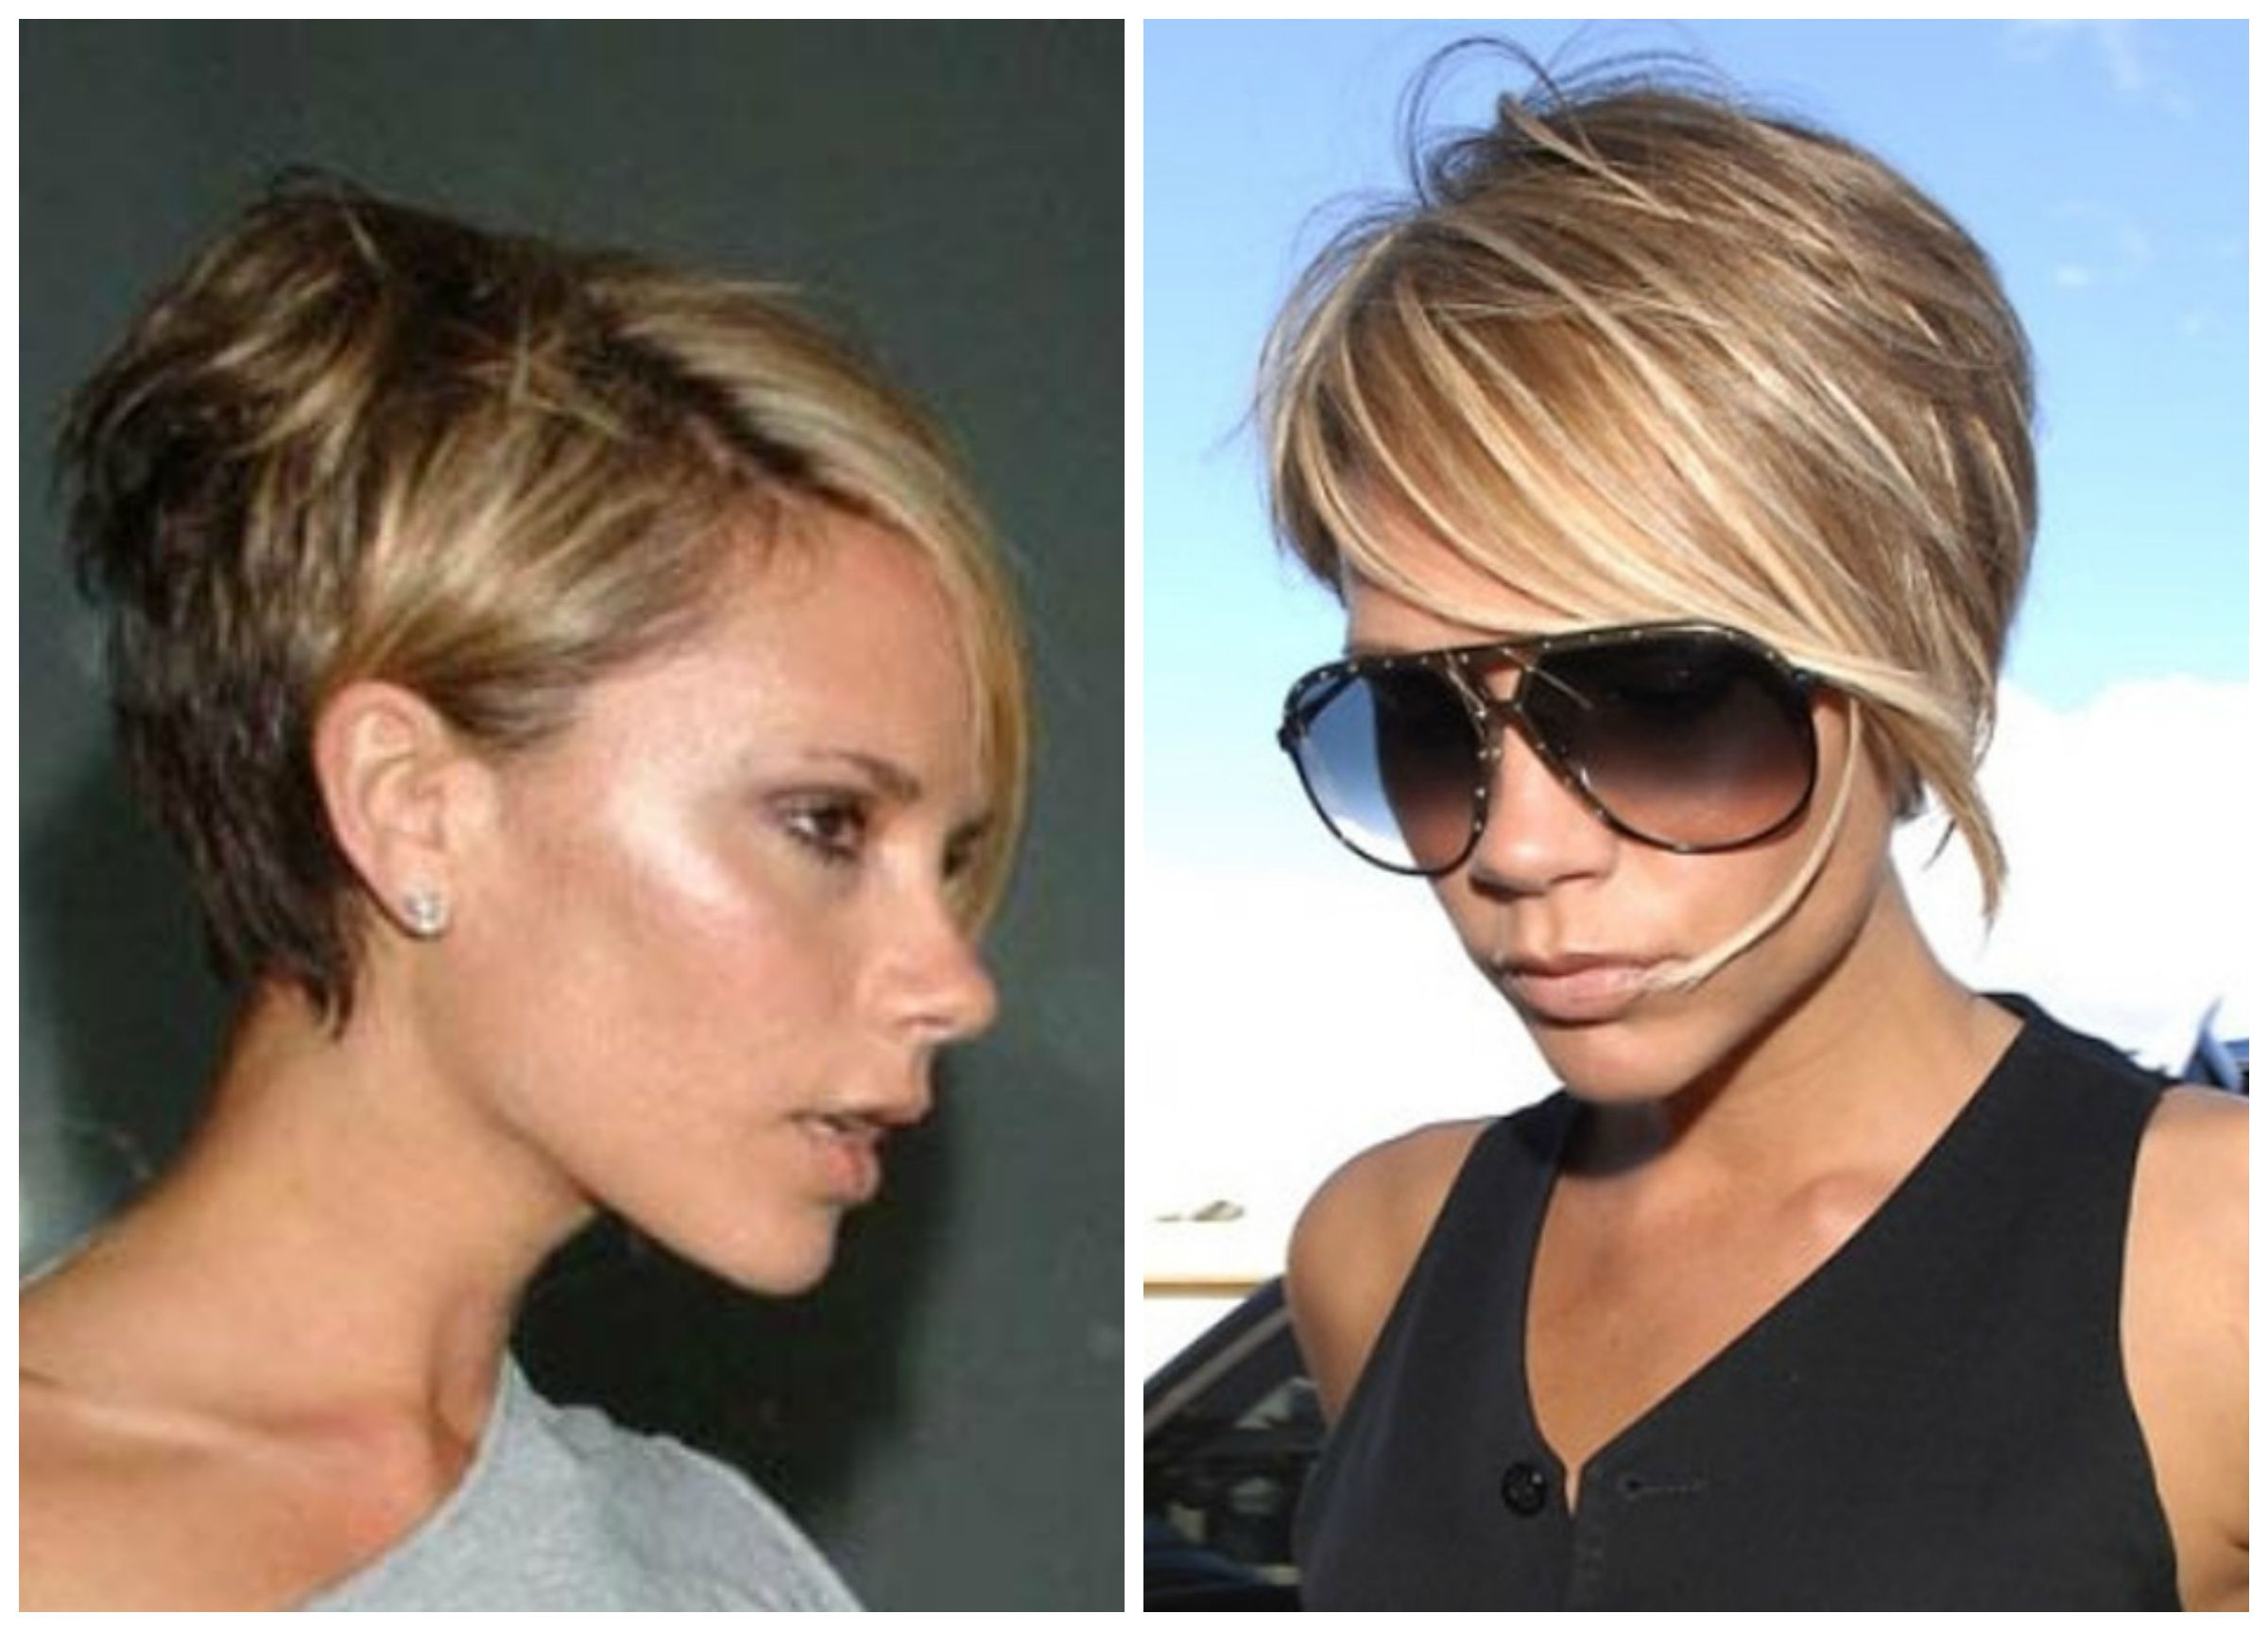 Victoria Beckham Short Hair Gallery | Victoria Beckham Short Pertaining To Victoria Beckham Short Haircuts (View 19 of 25)